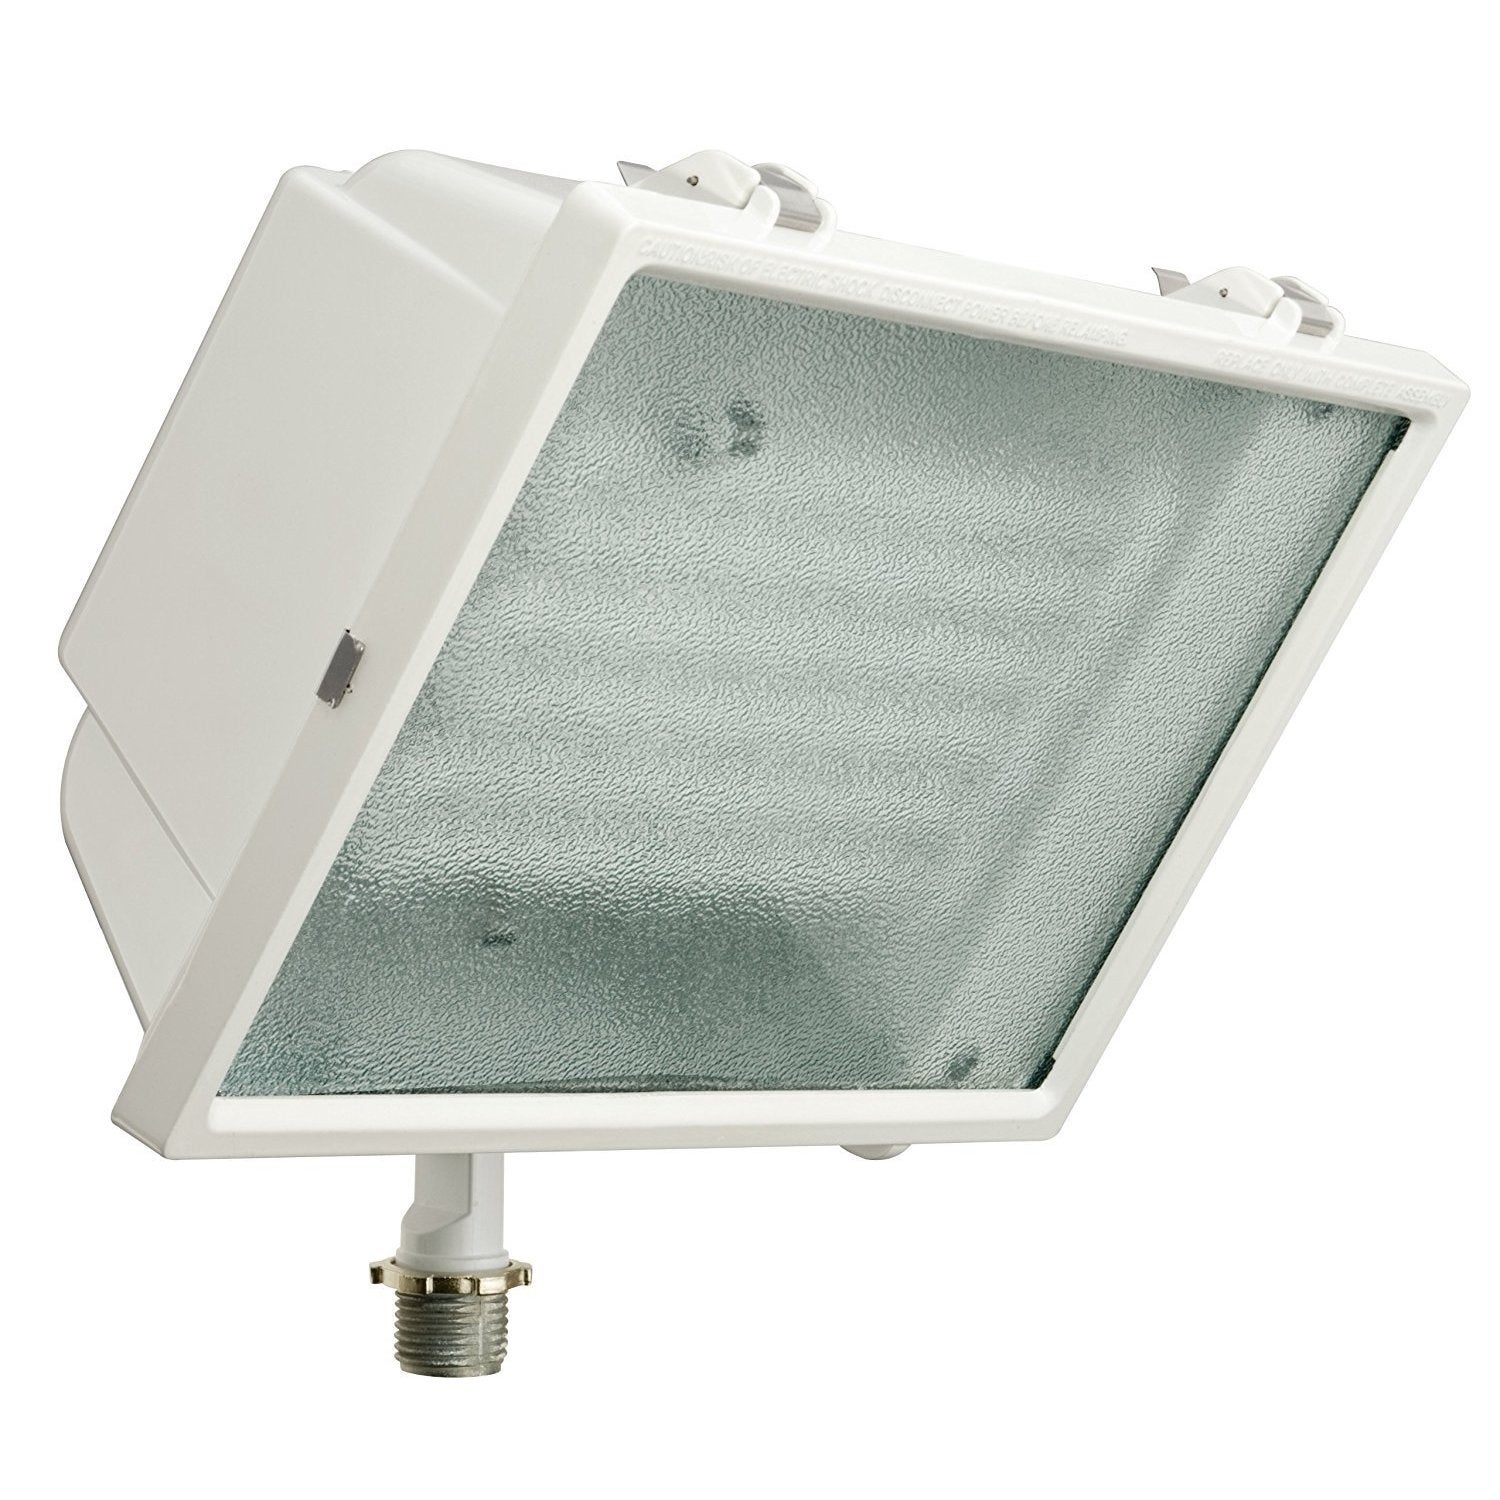 Lithonia Lighting White Metal LED Outdoor Flood Light (14...